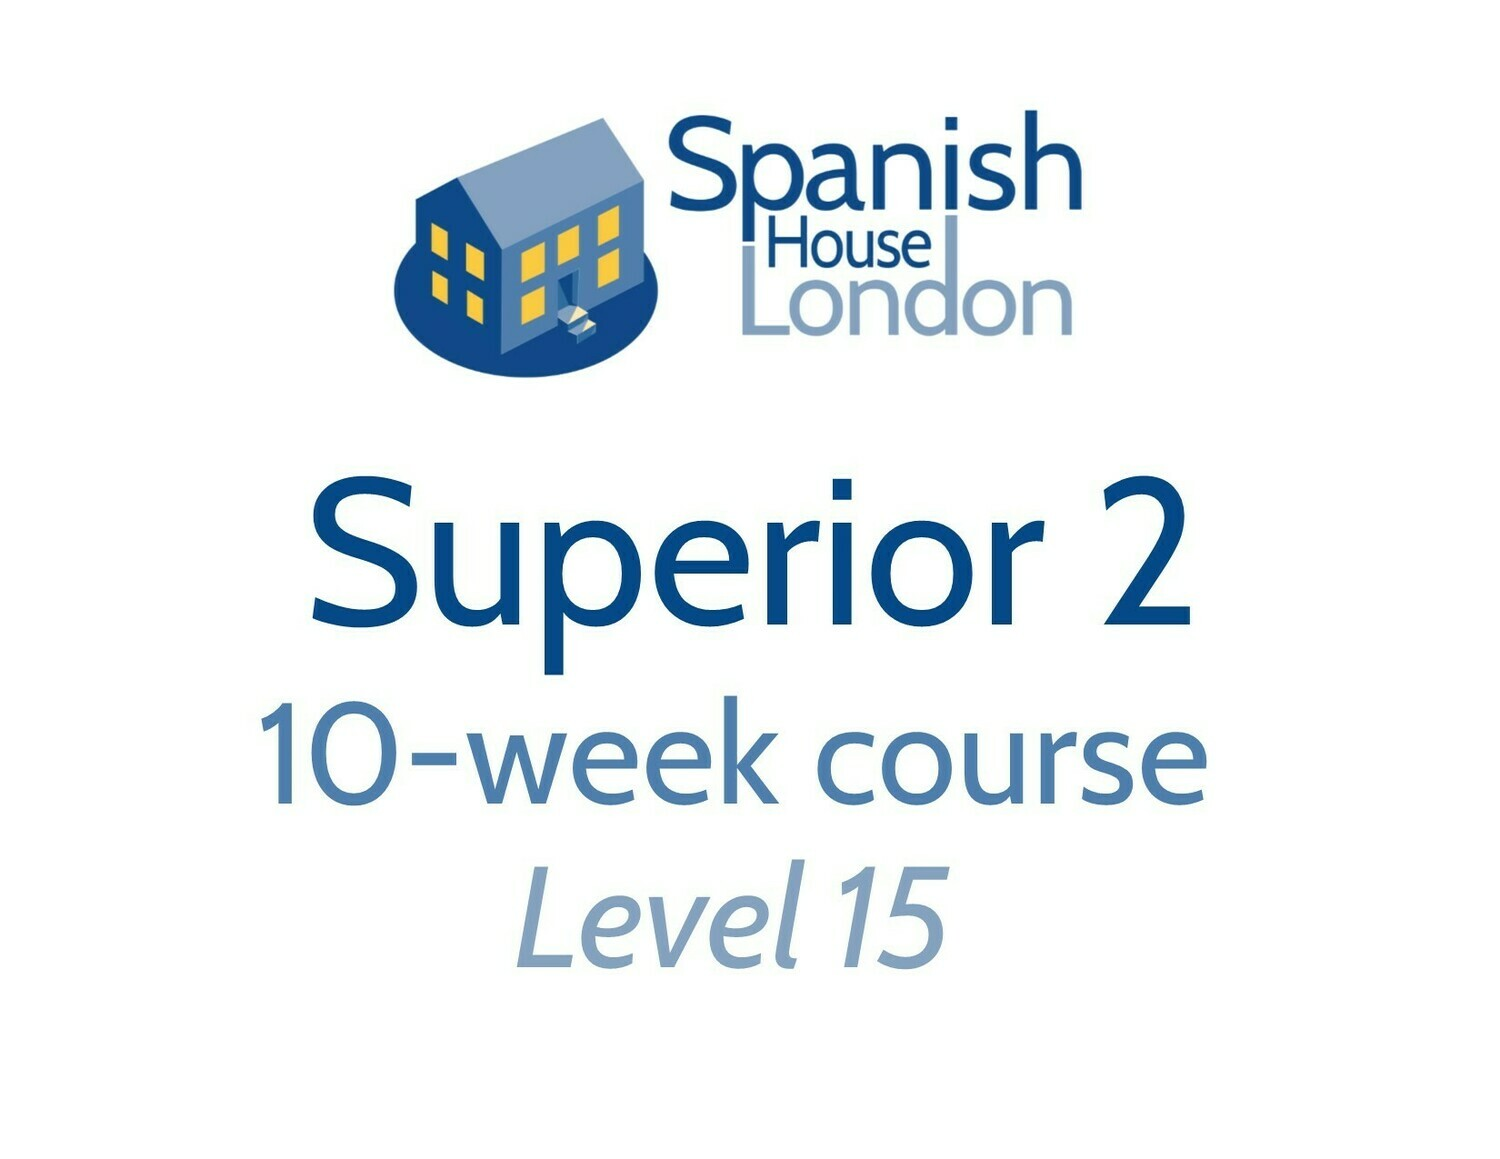 Superior 2 Course starting on 24th March at 7.30pm in Clapham North